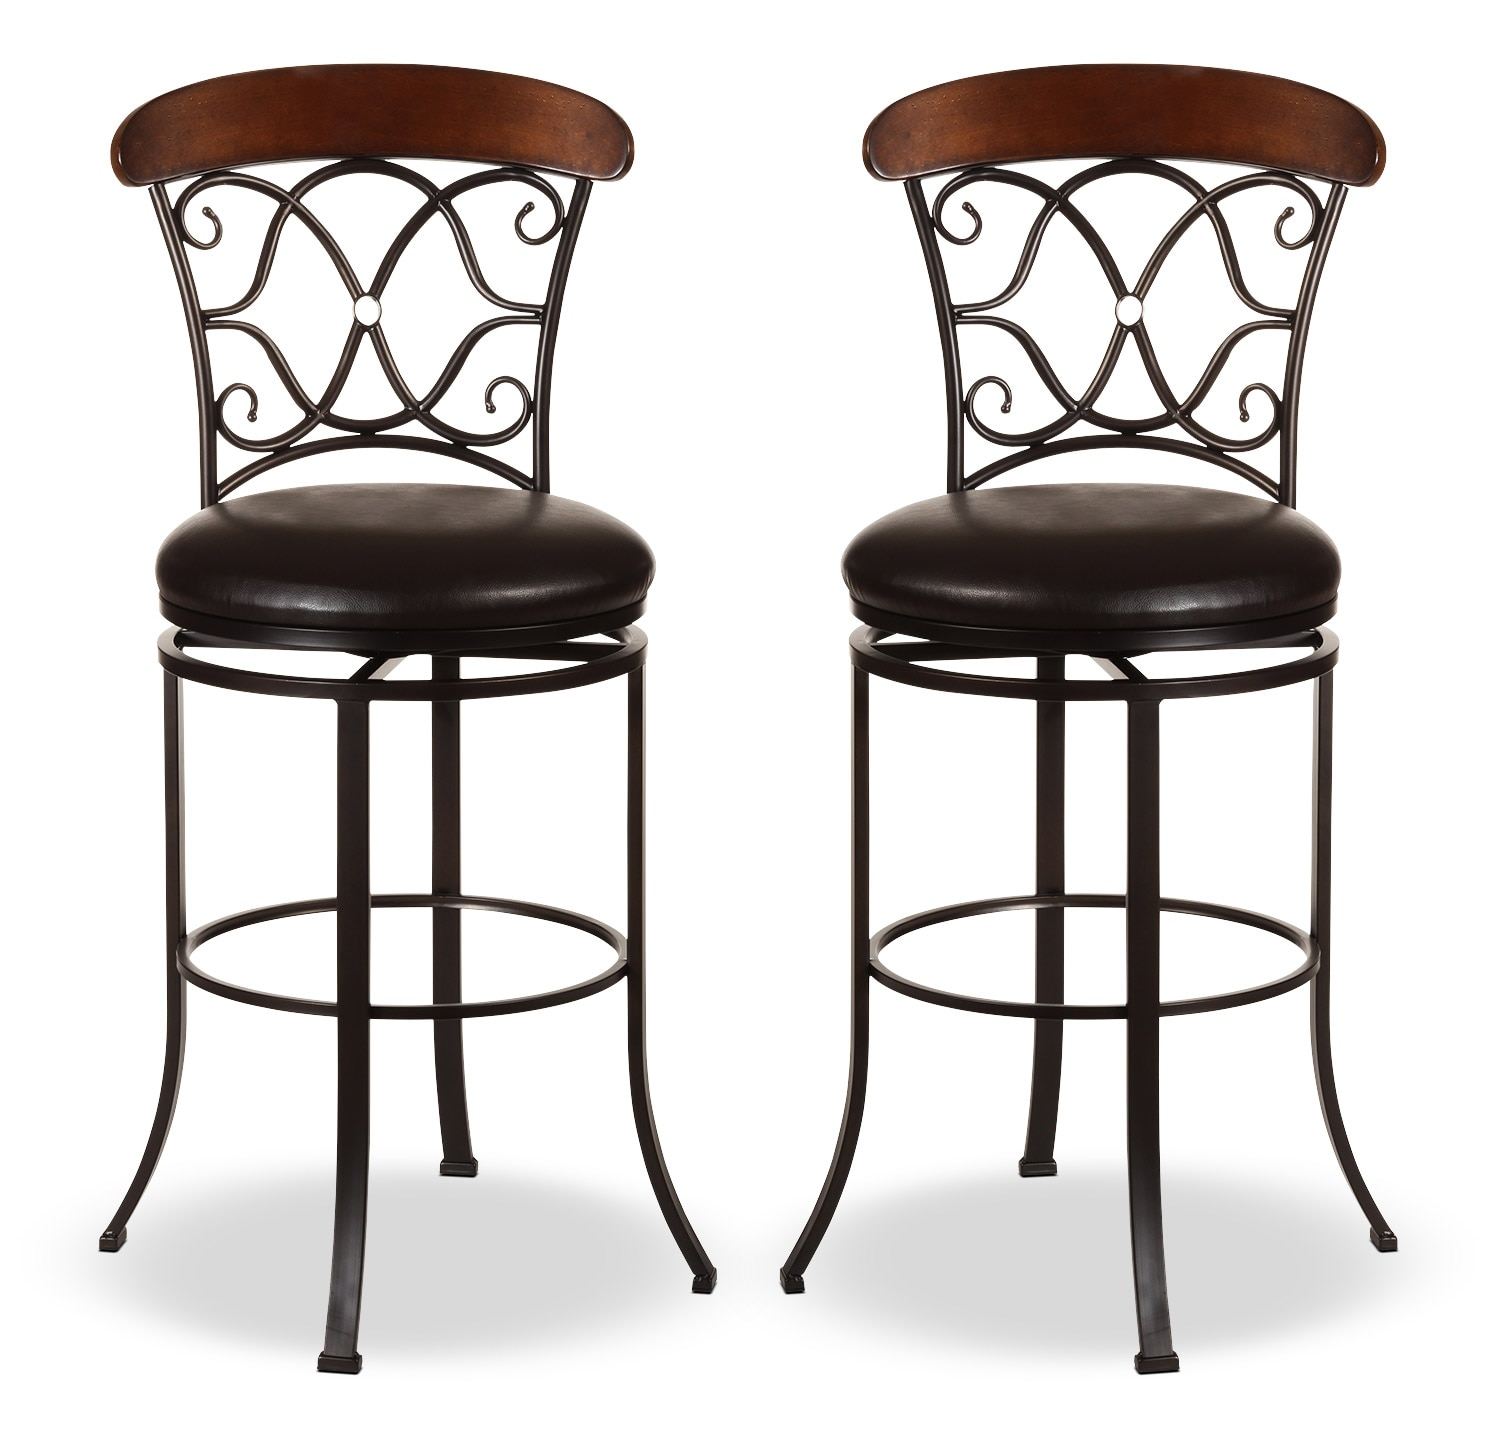 Dundee Counter-Height Swivel Stool – Set of 2